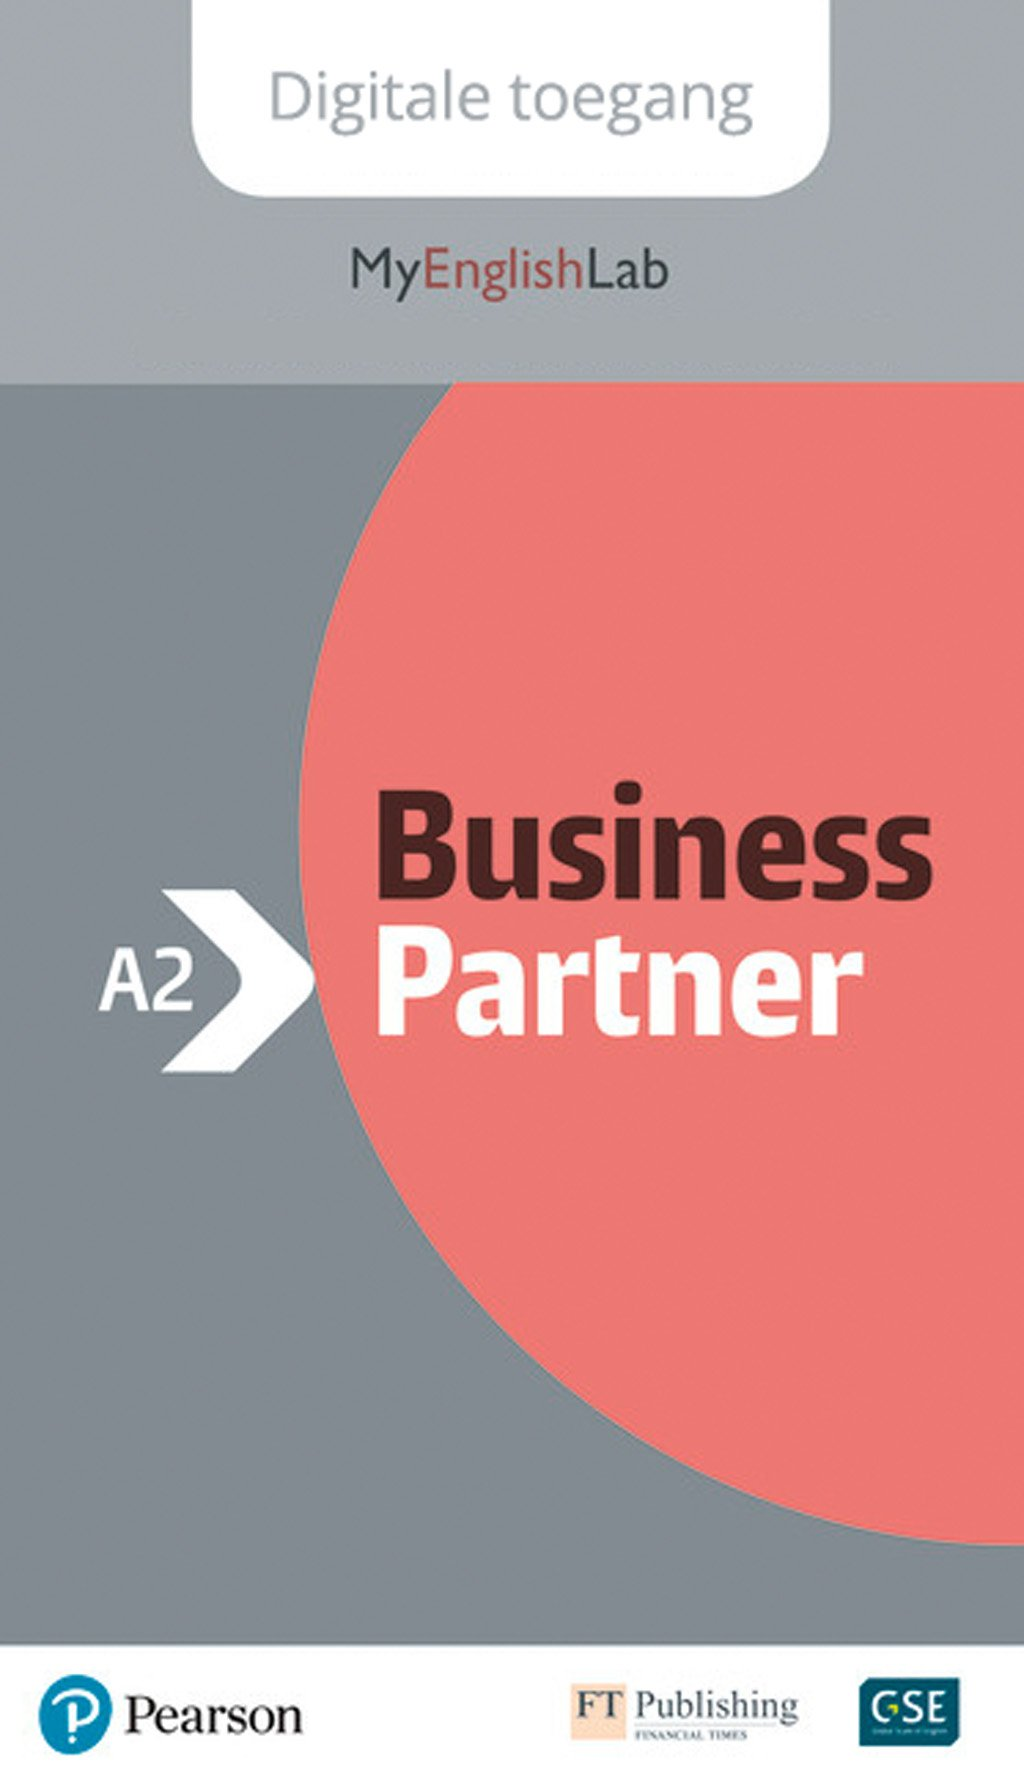 Business Partner A2 MyEnglishLab